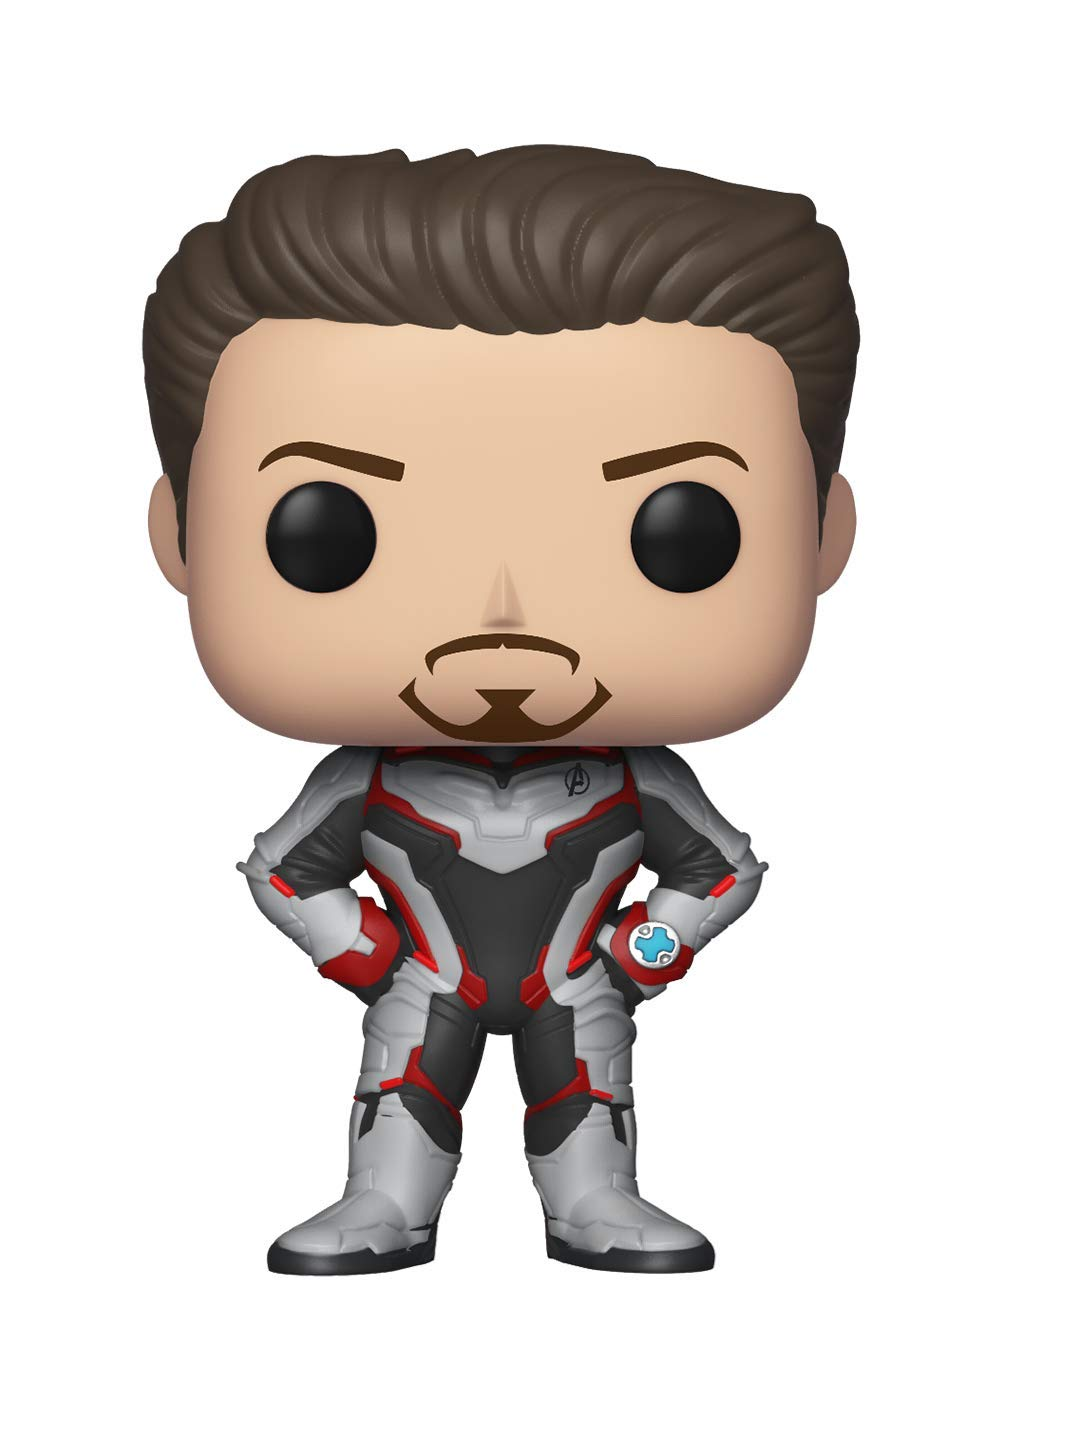 Avengers Endgame Iron Man